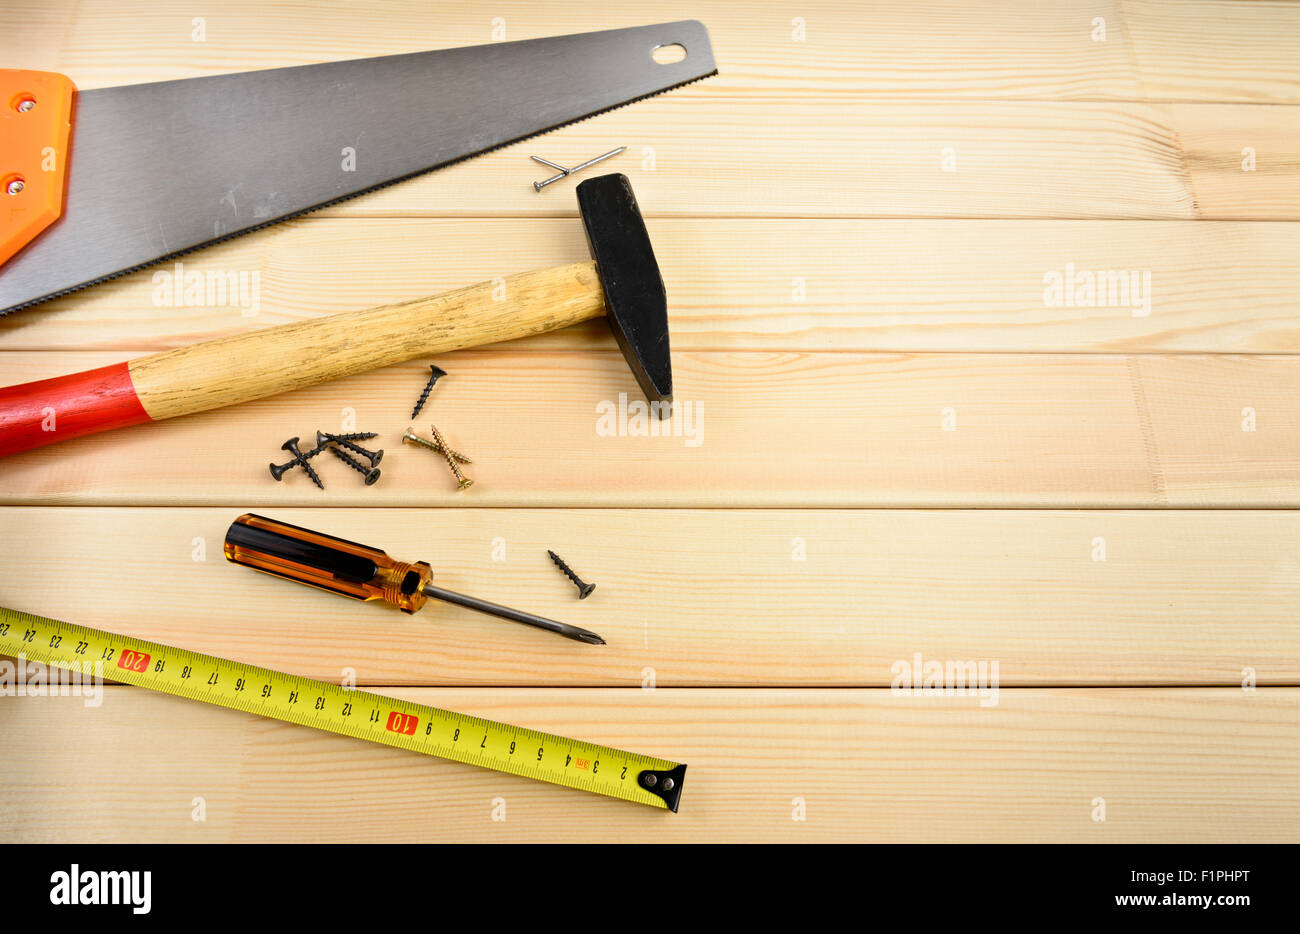 Saw, screw, tape measure and hammer on wood - Stock Image